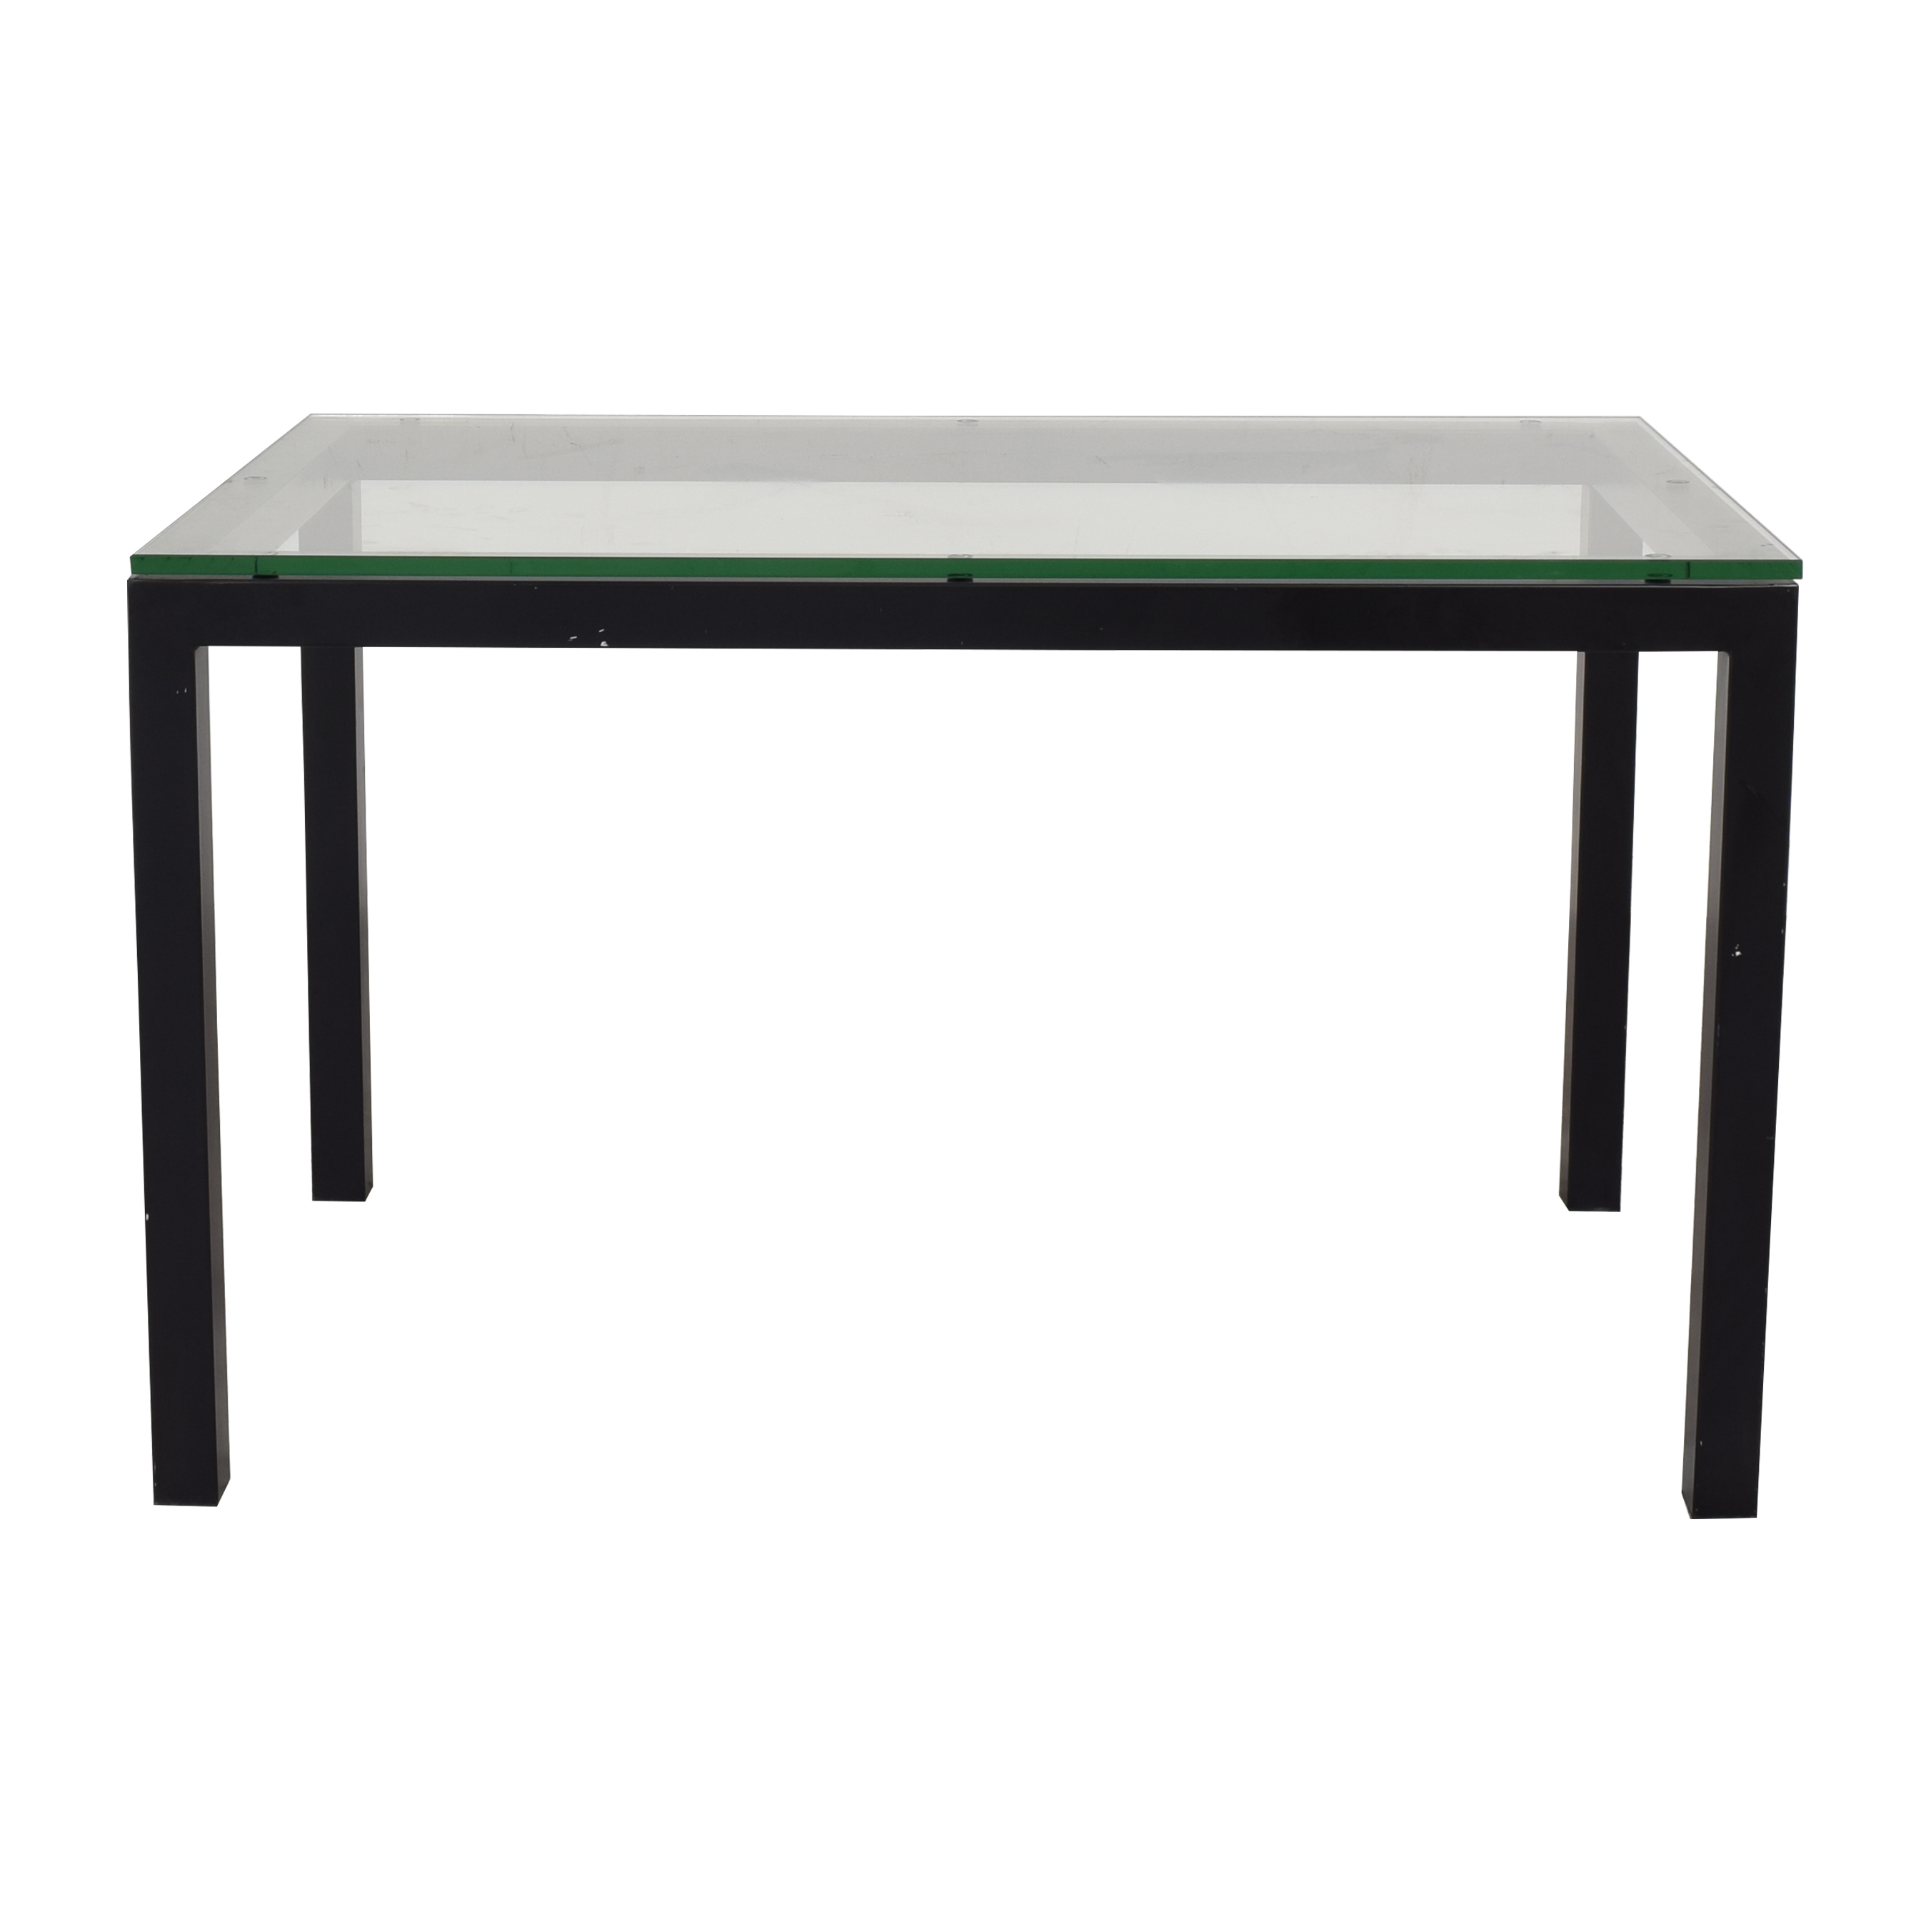 Crate & Barrel Crate & Barrel Parsons Dining Table for sale